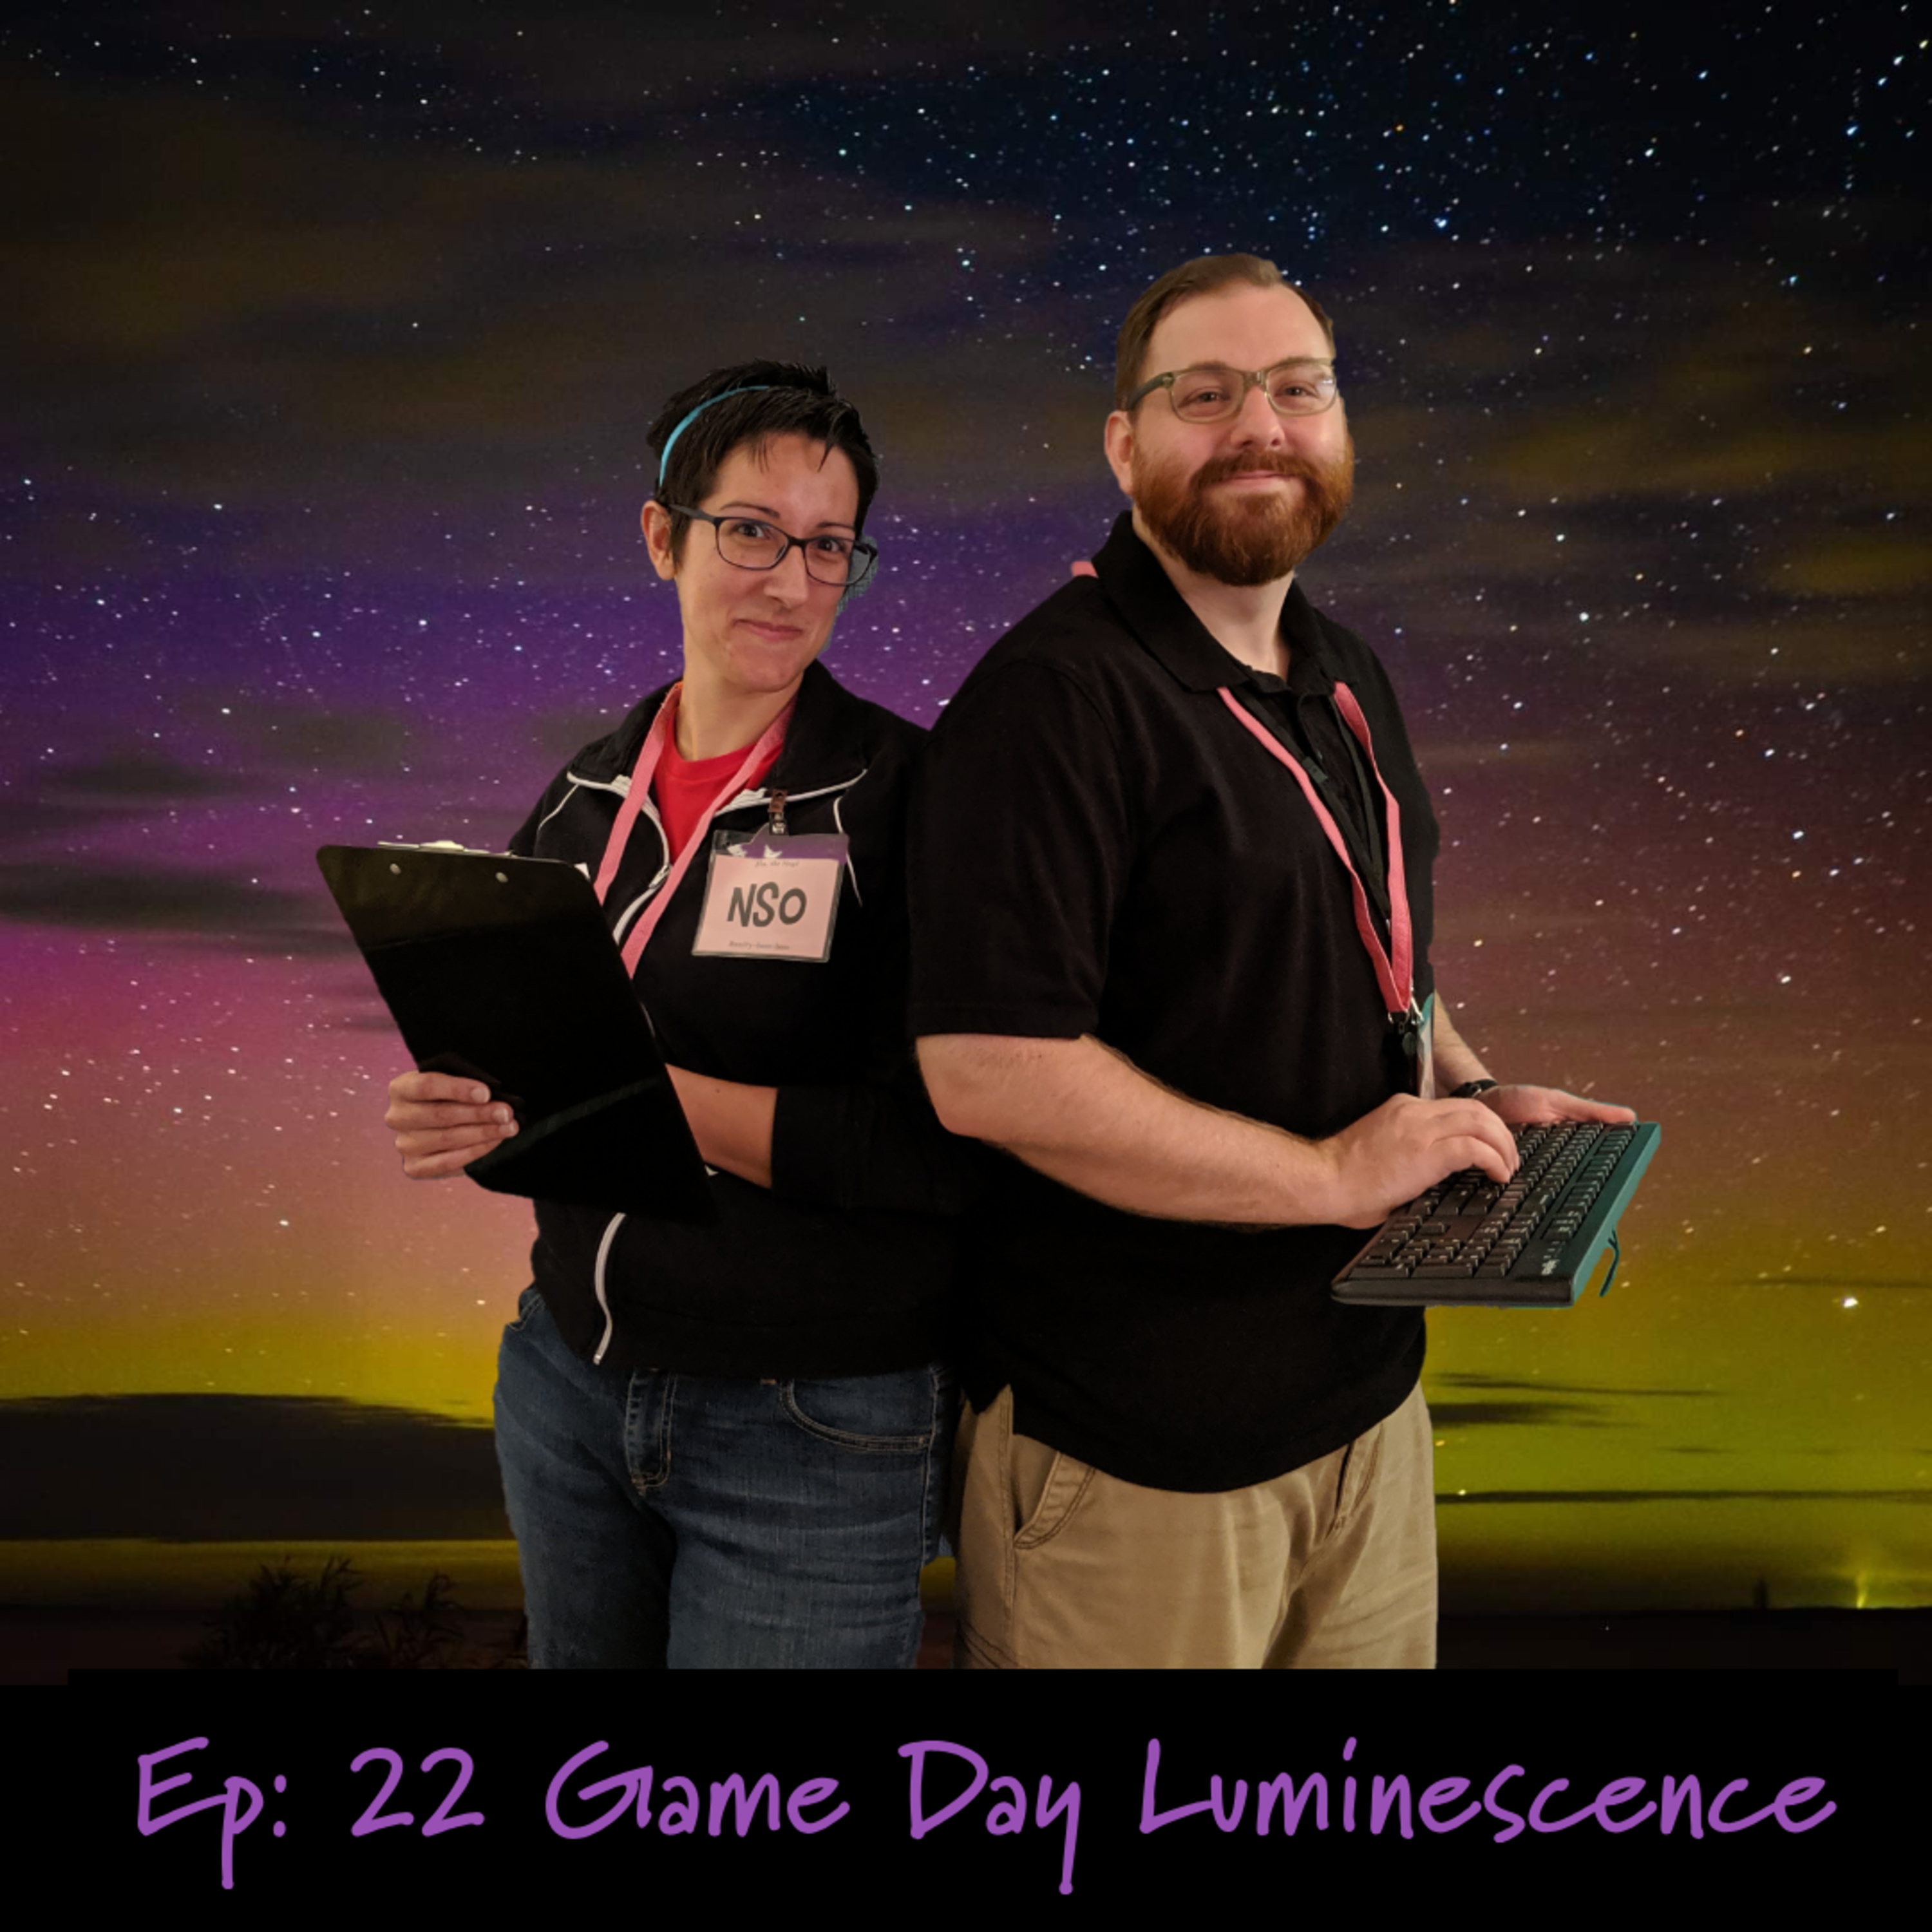 Ep: 22 Game Day Luminescence